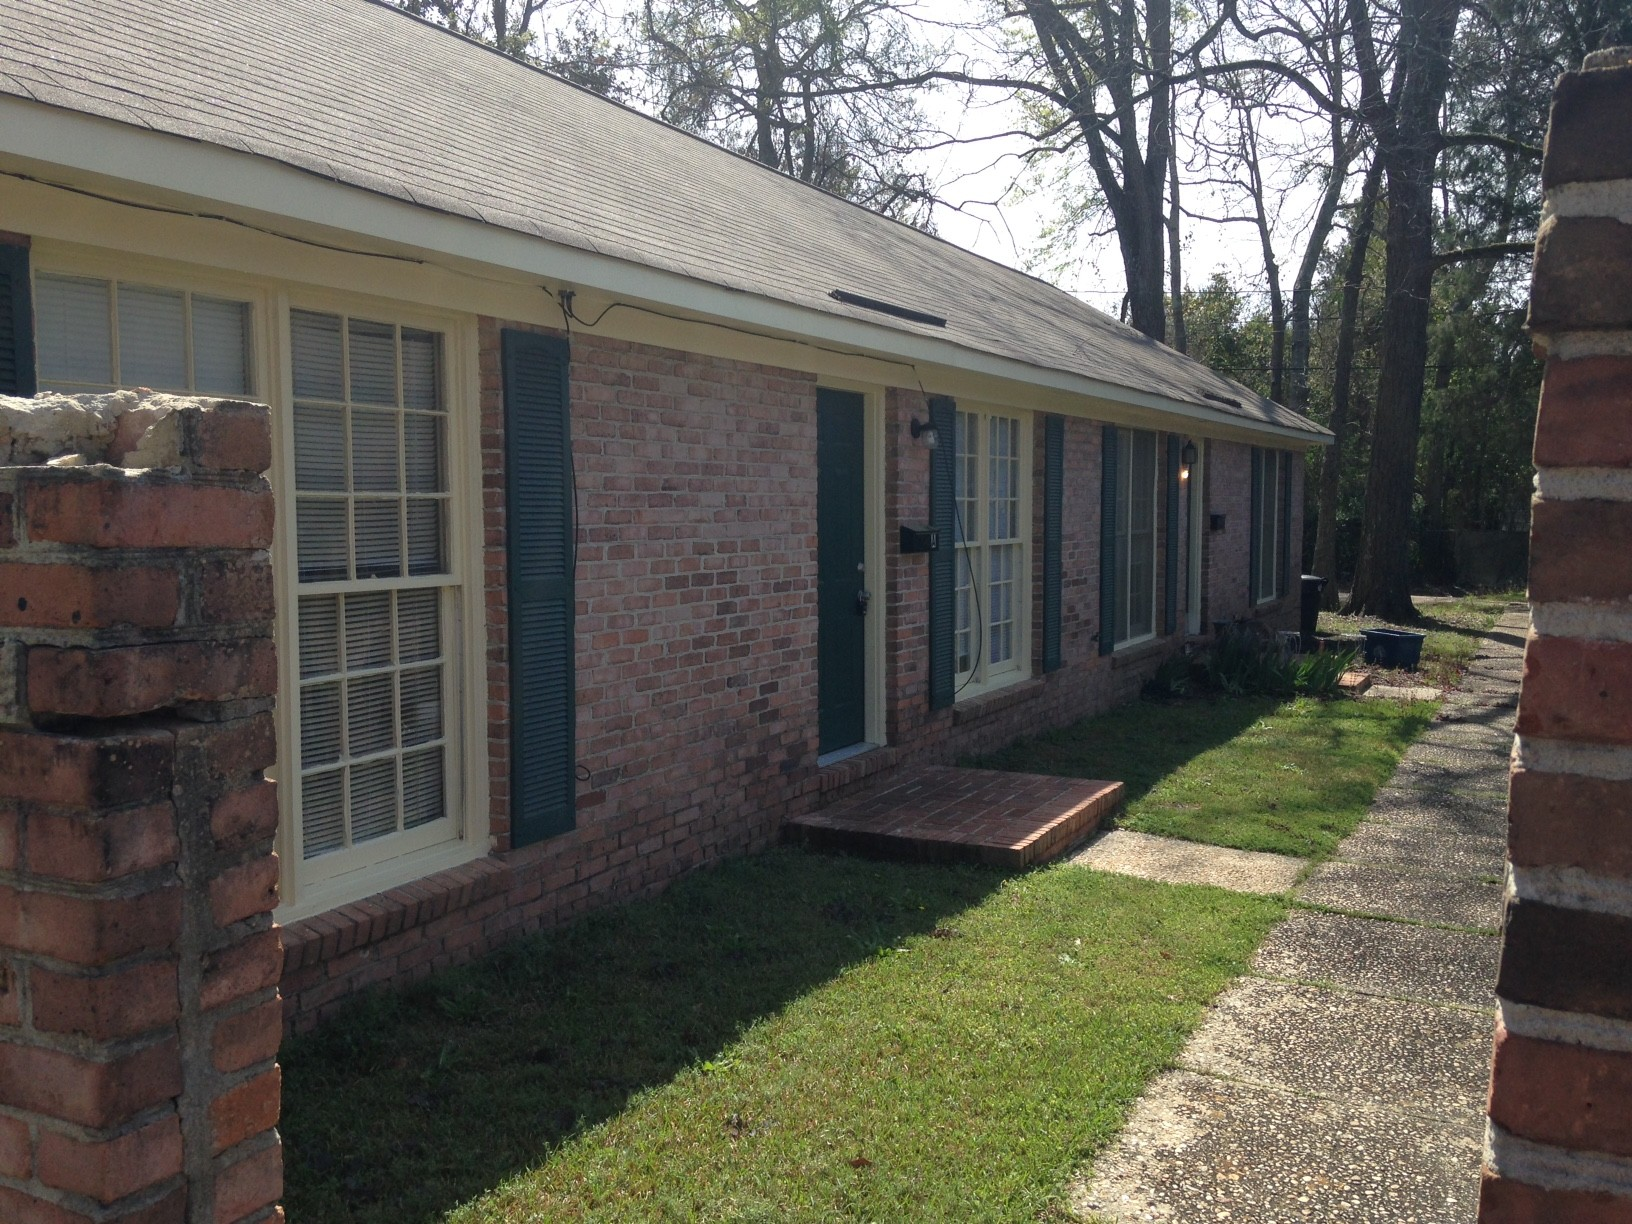 1404 19th St Columbus Ga 31901 2 Bedroom Apartment For Rent For 500 Month Zumper